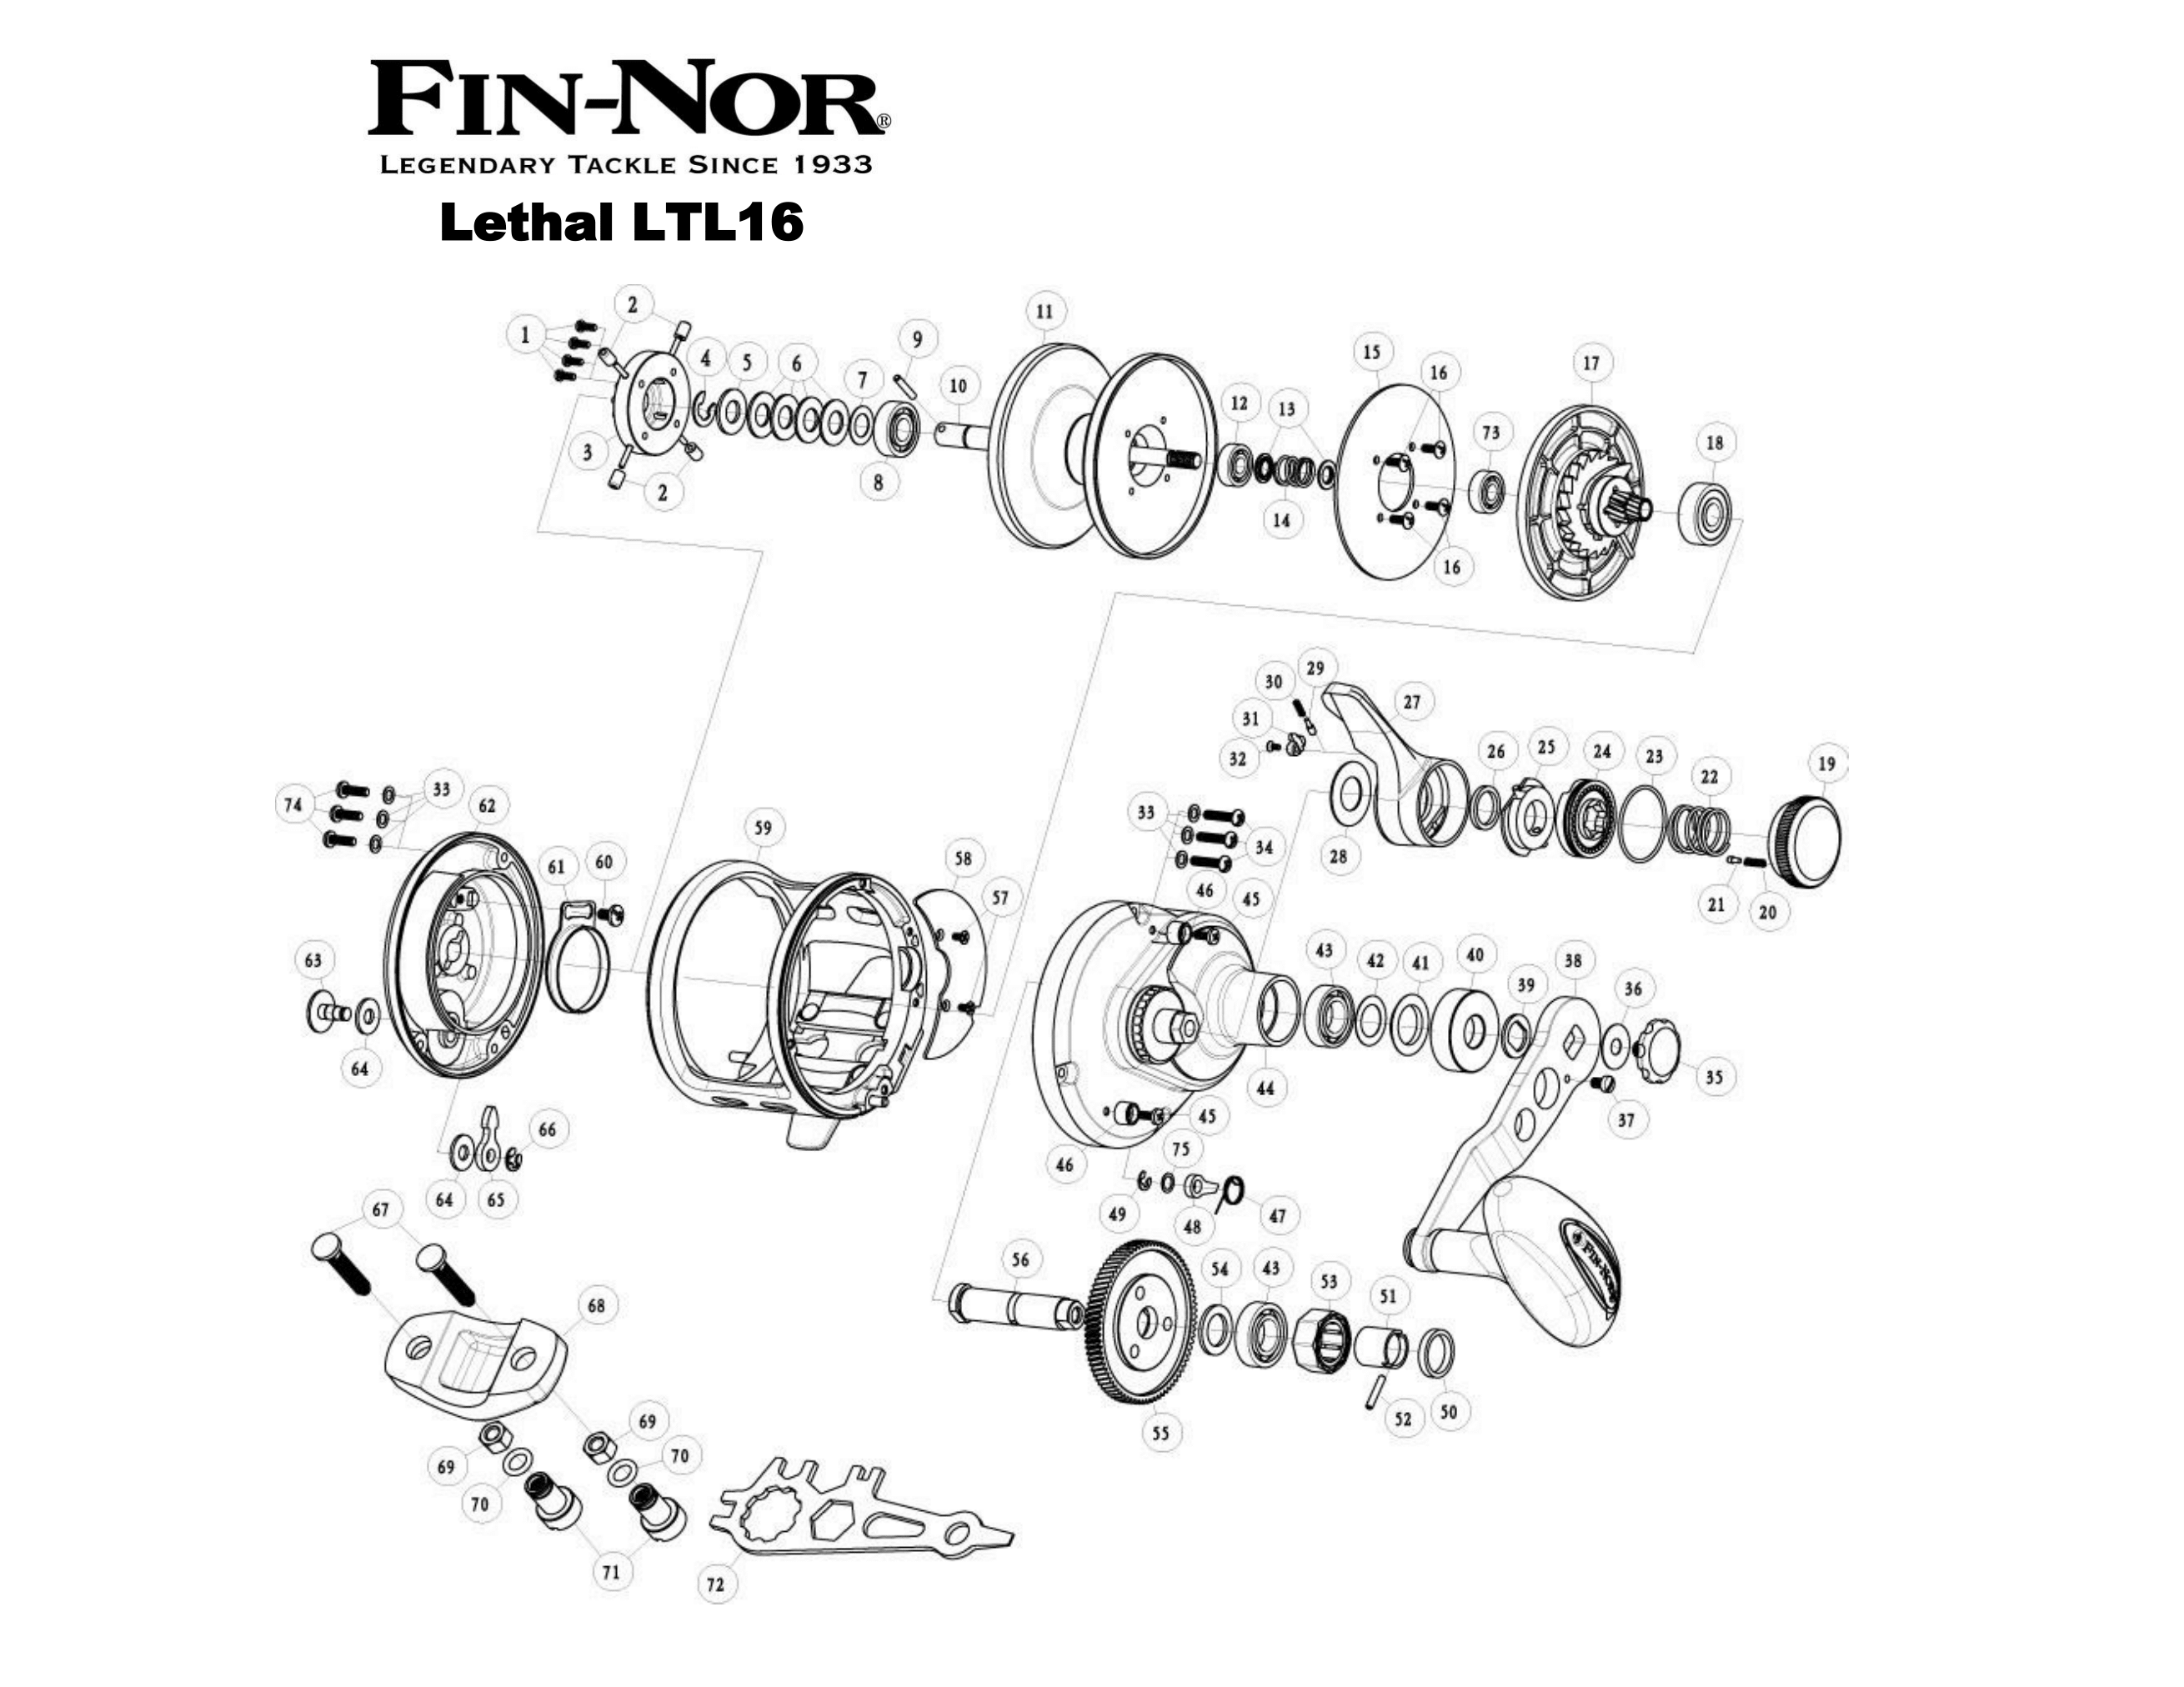 Reel Parts - Fin-Nor Parts - FIn-Nor Lever Drag Parts - Fin-Nor ...